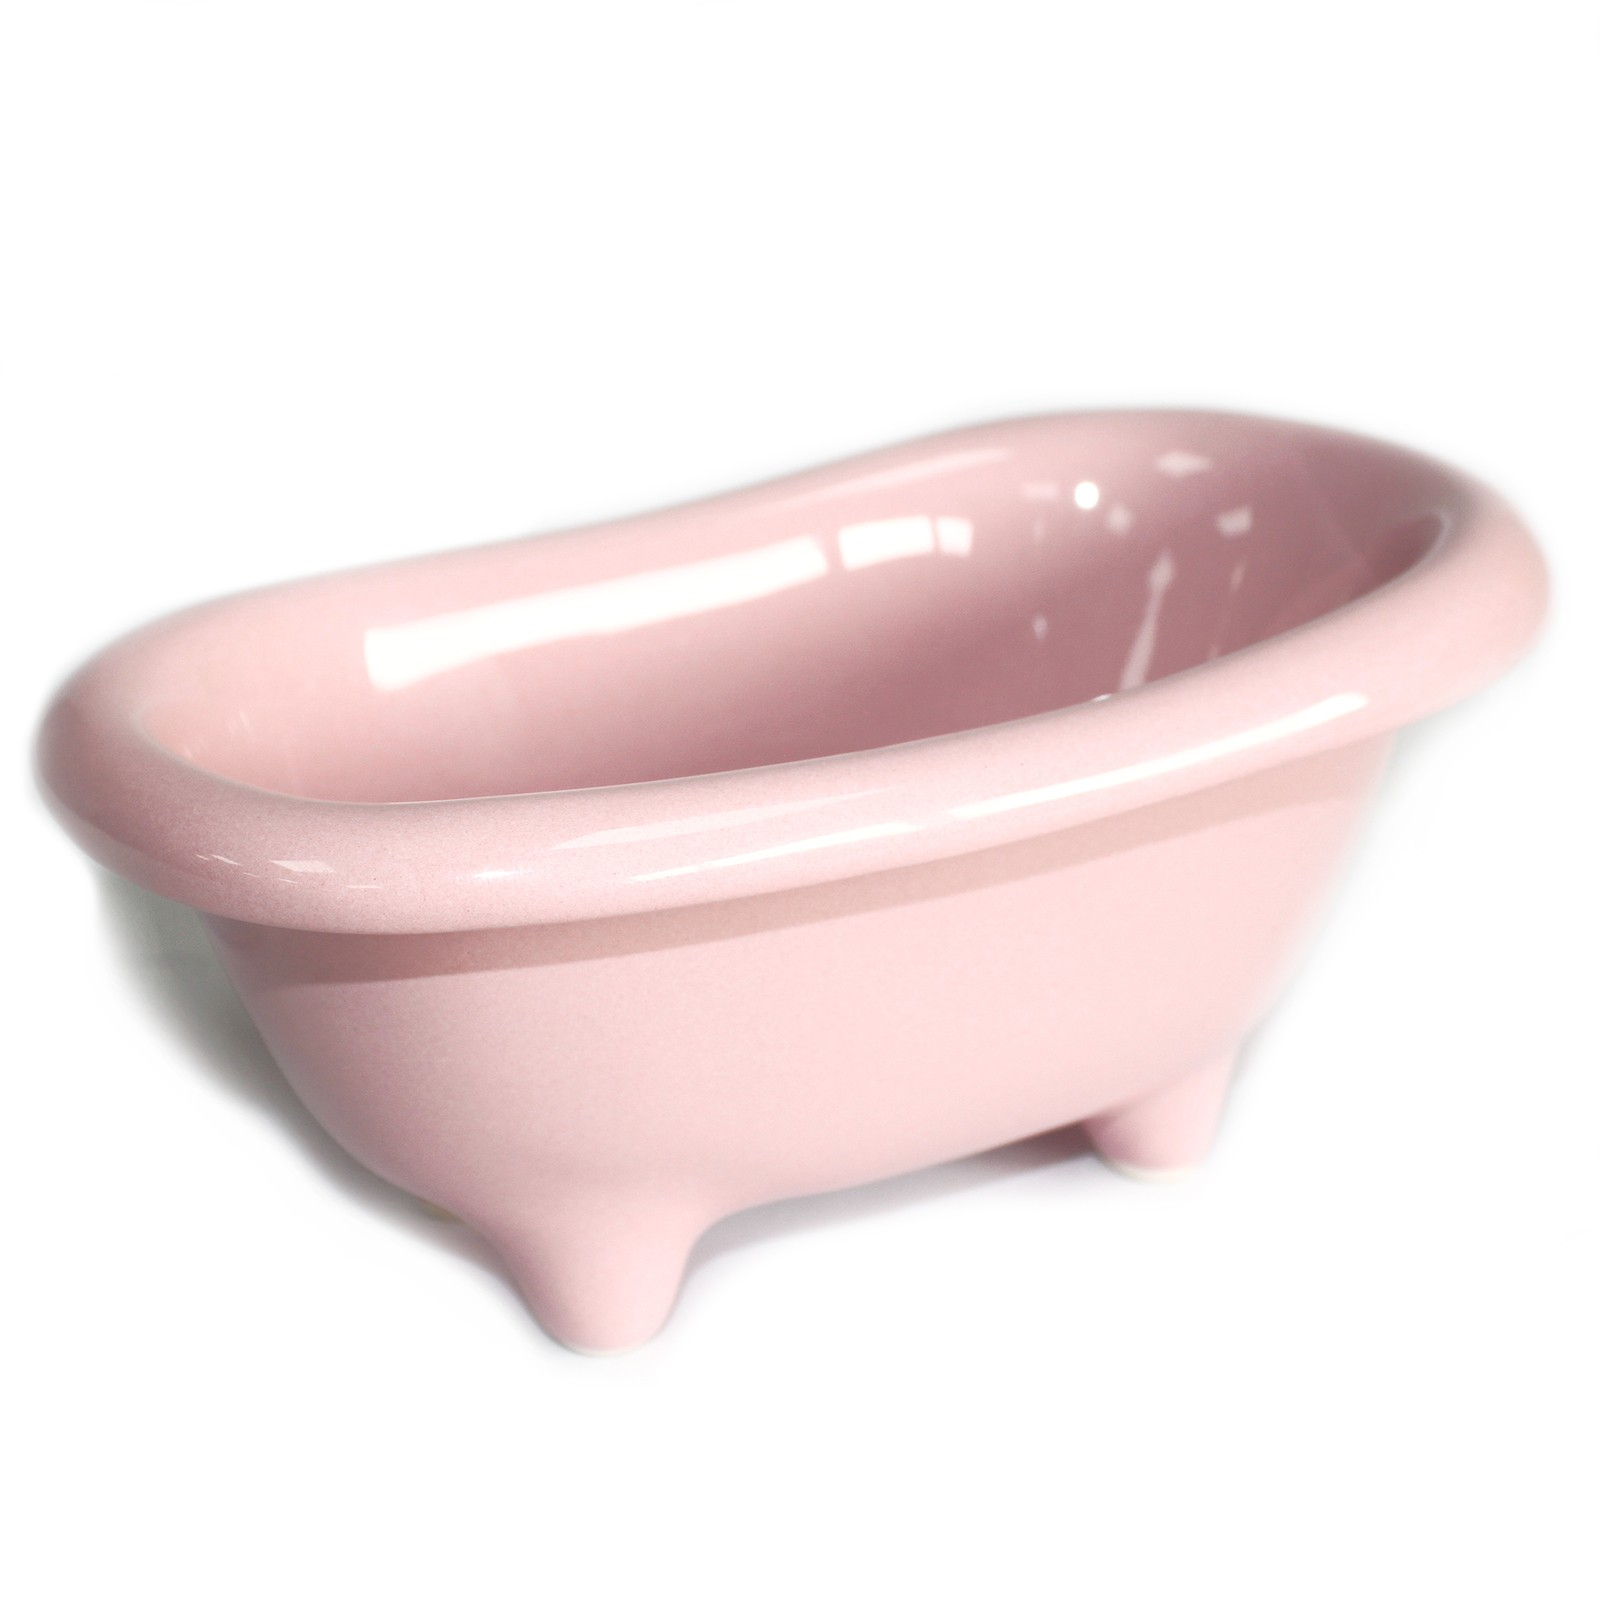 Ceramic Mini Bath - Rose